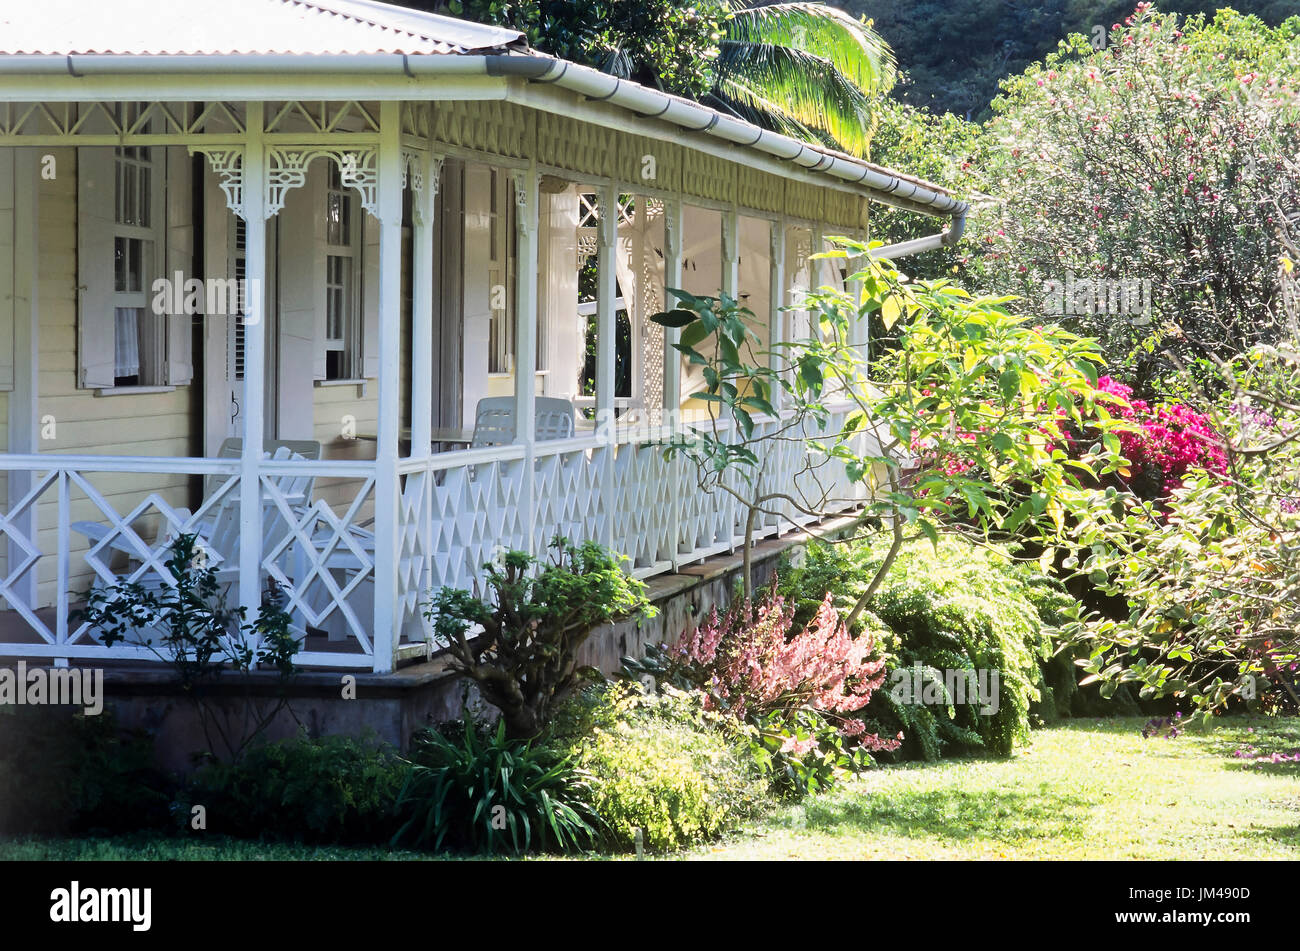 House with veranda - Stock Image